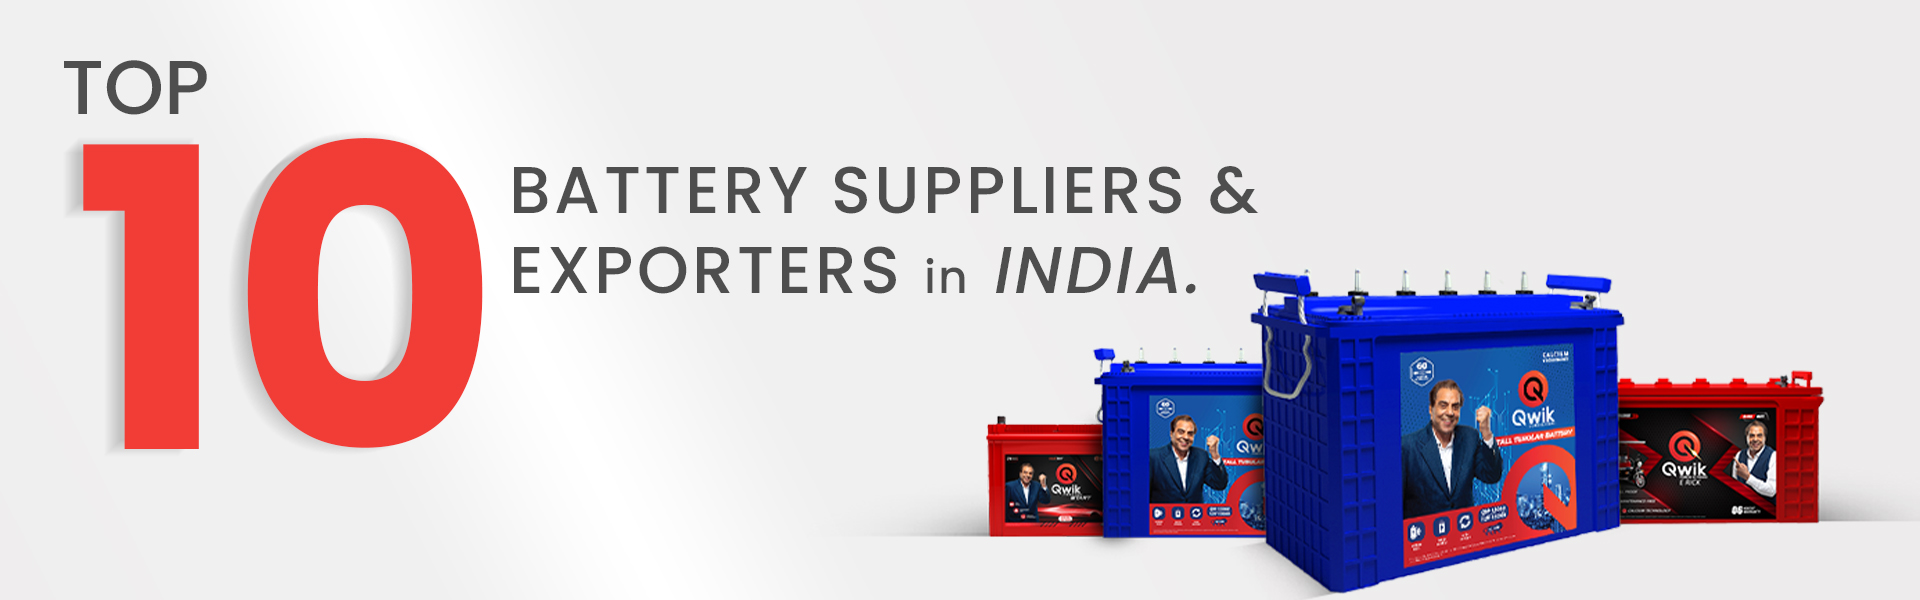 Top 10 battery suppliers & exporters in india